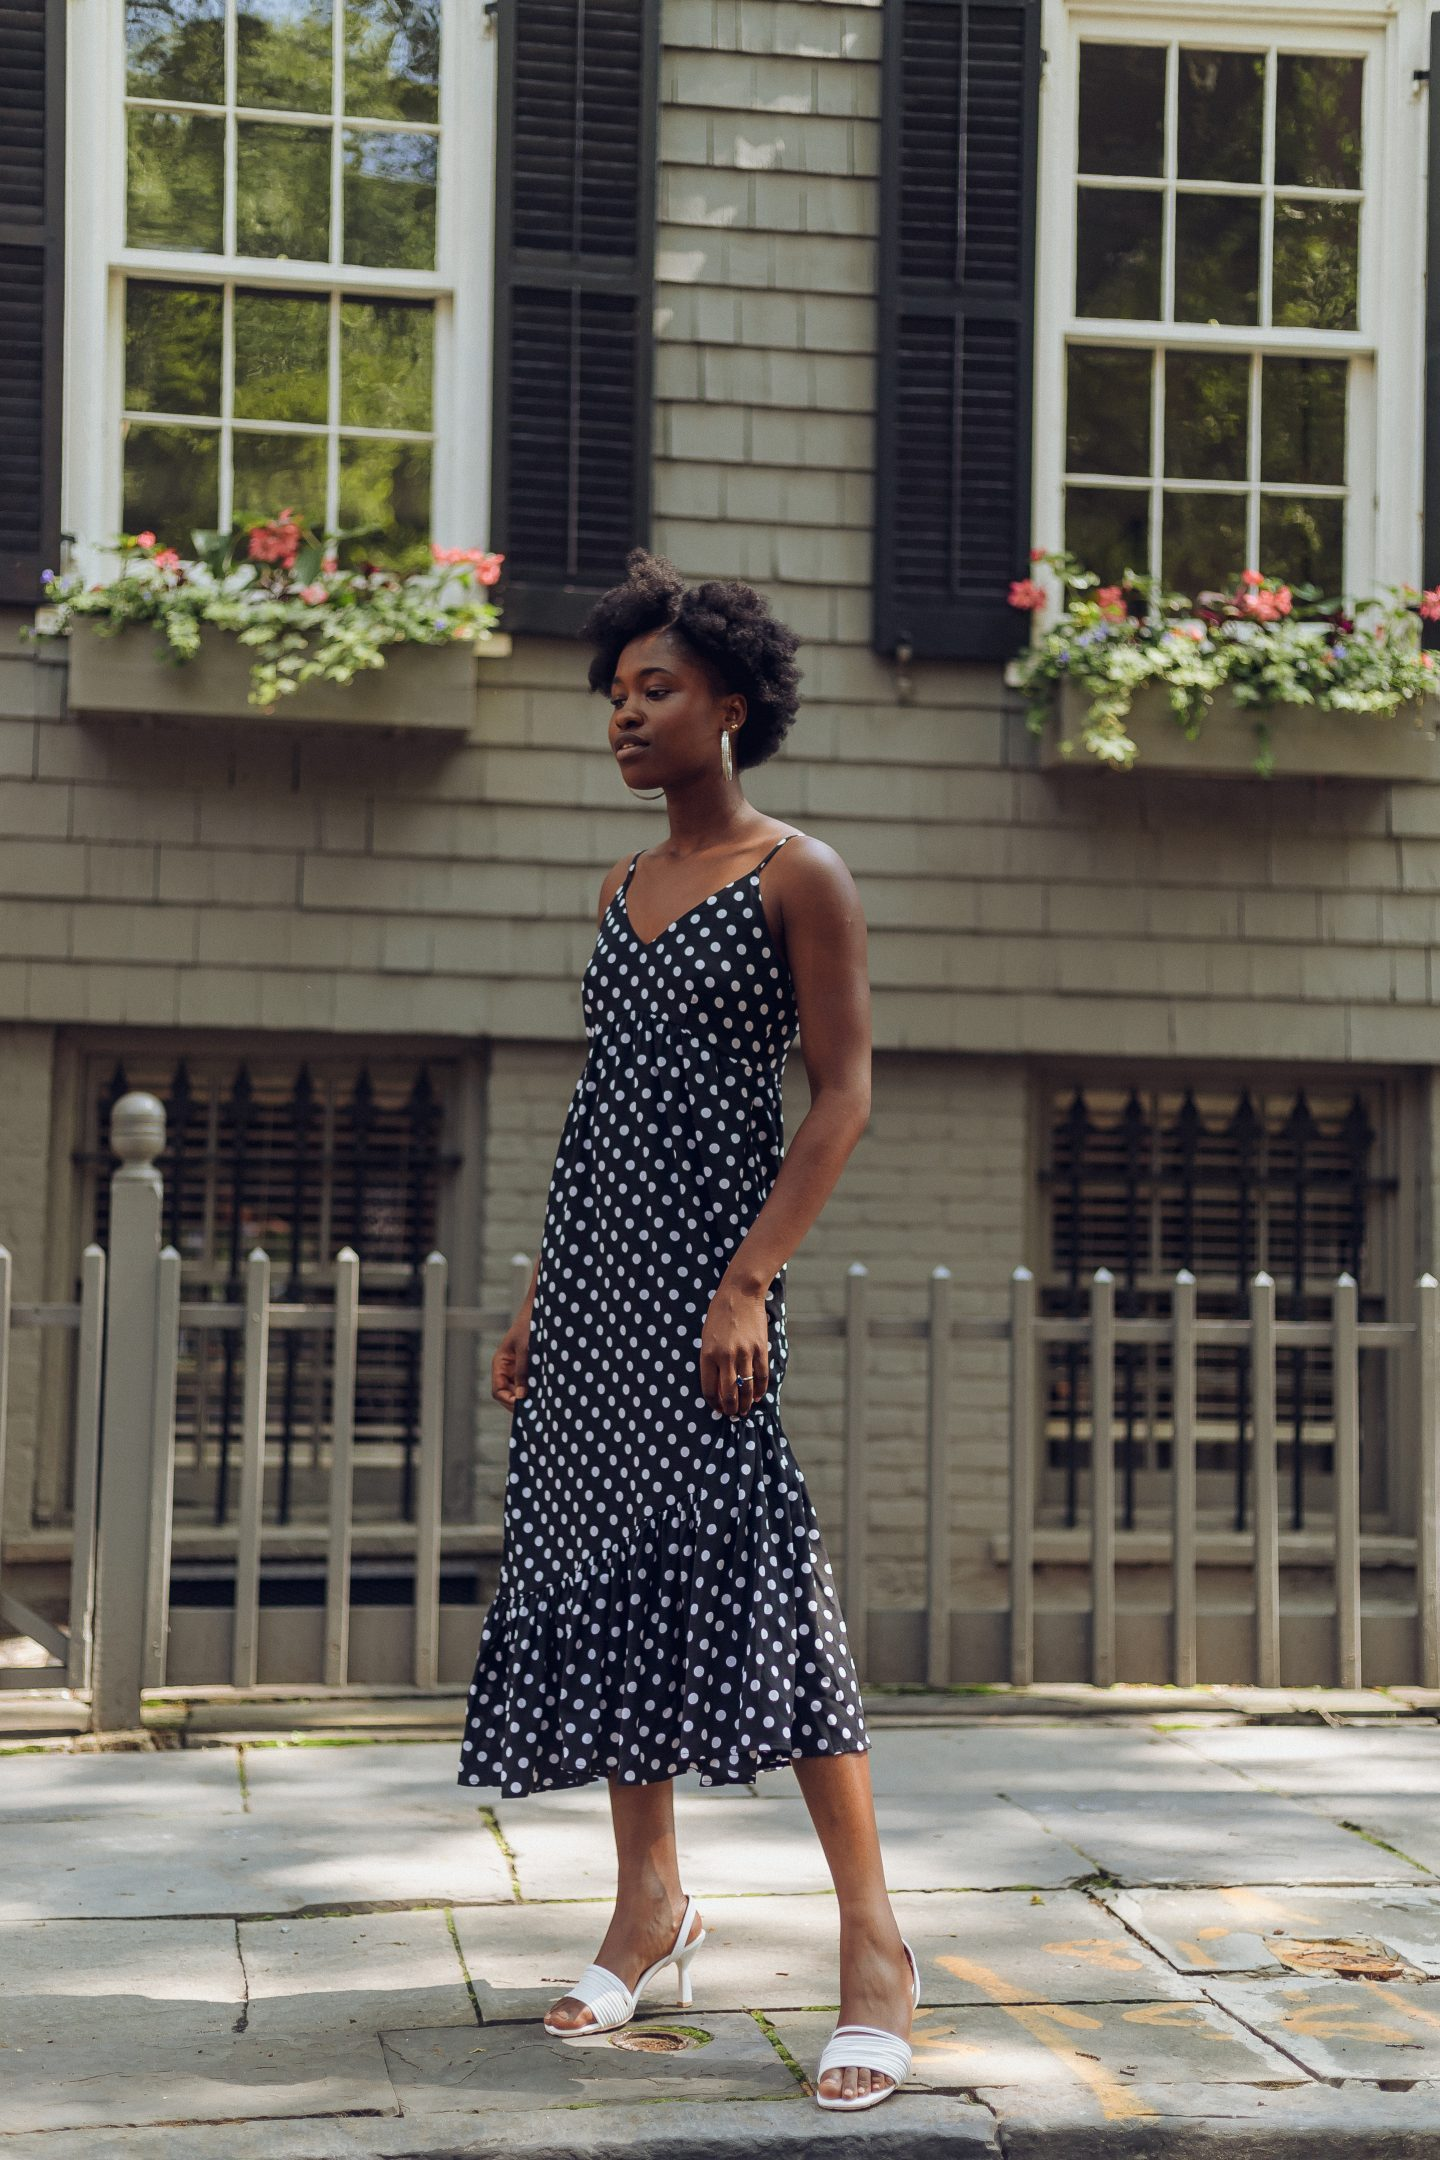 Trying the Polka Dot Dress Trend